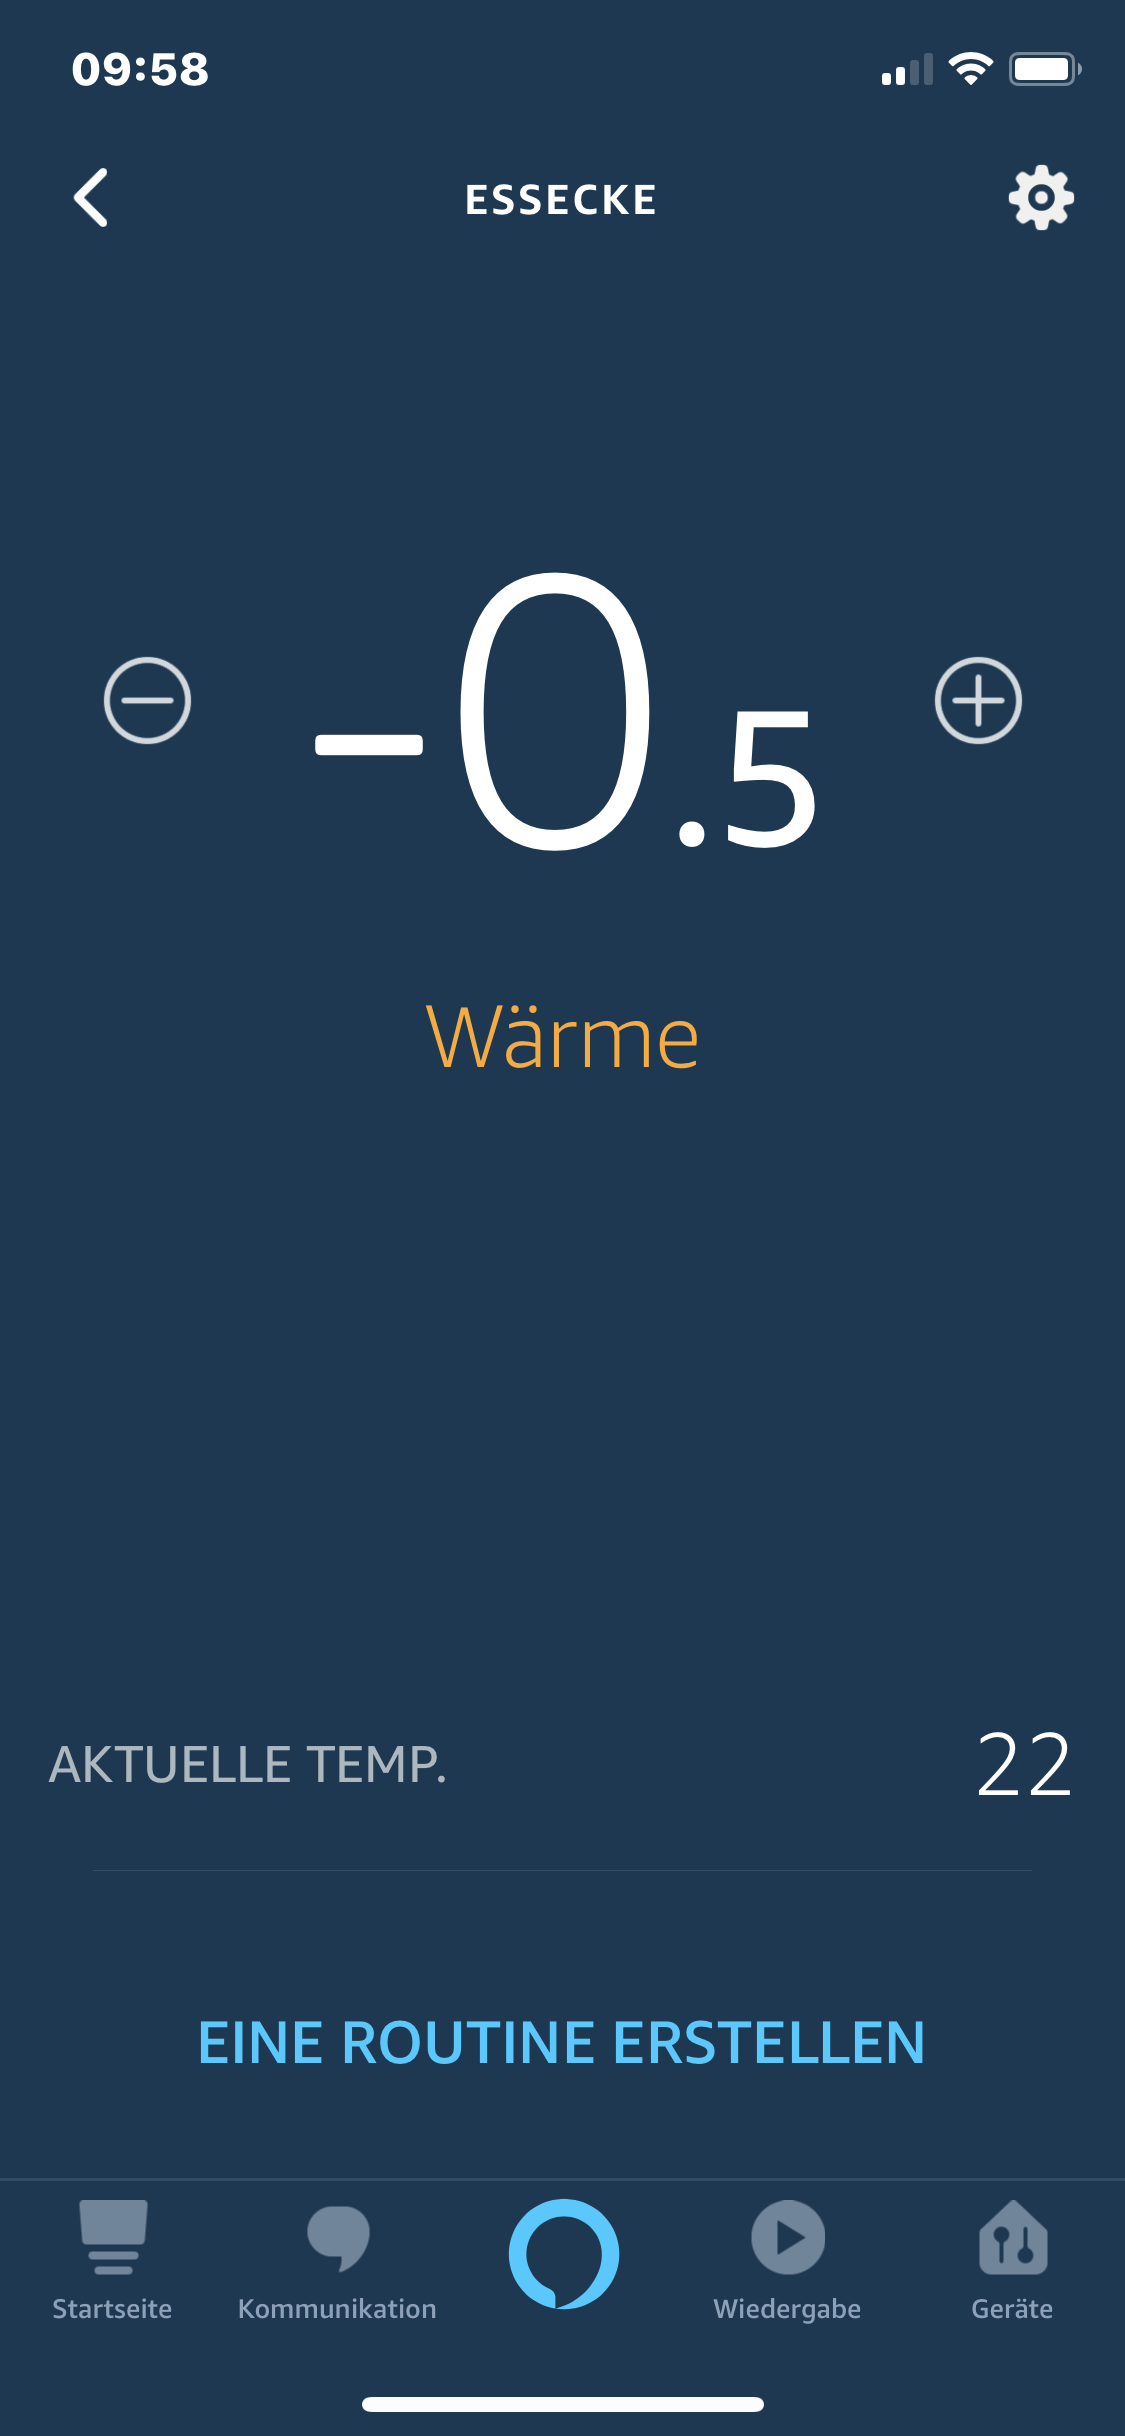 Thermostat: How to set actual temperature? · Issue #62 · coldfire84